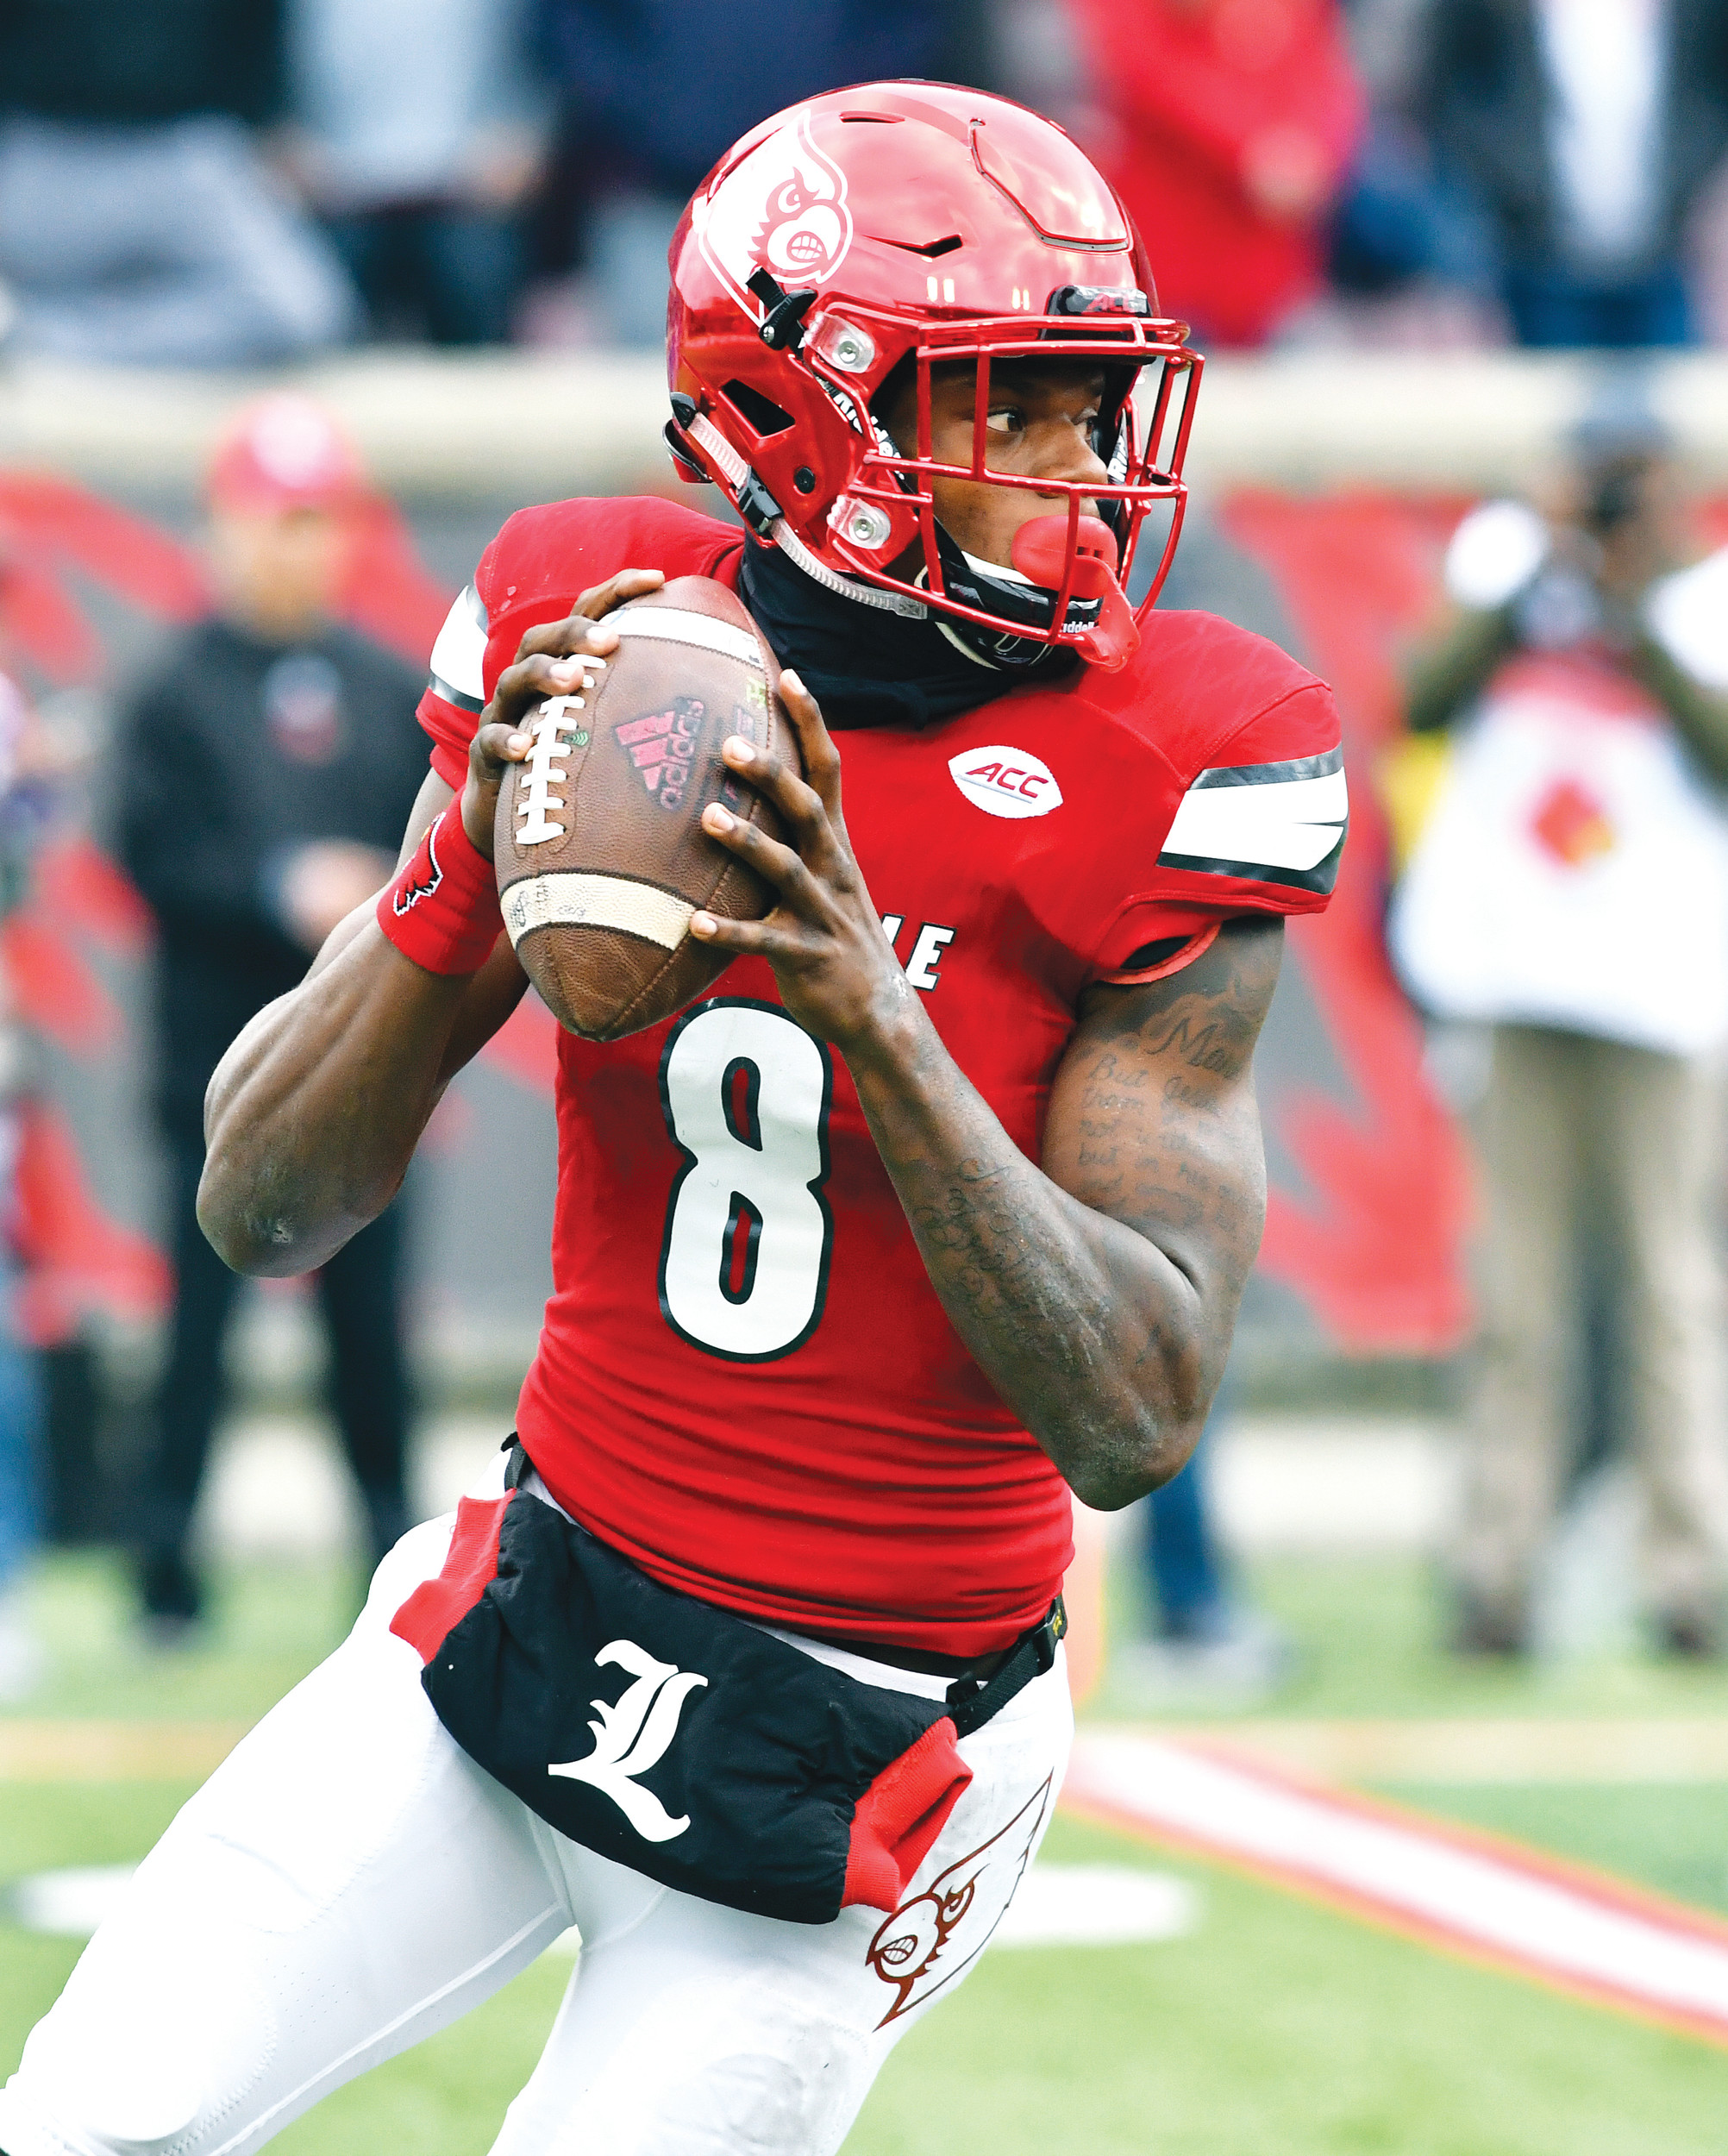 Louisville's Lamar Jackson (8) looks for an open receiver during a game against Kentucky in Louisville. Jackson won the Heisman Trophy last year and has a chance to become only the second two-time winner of the award.